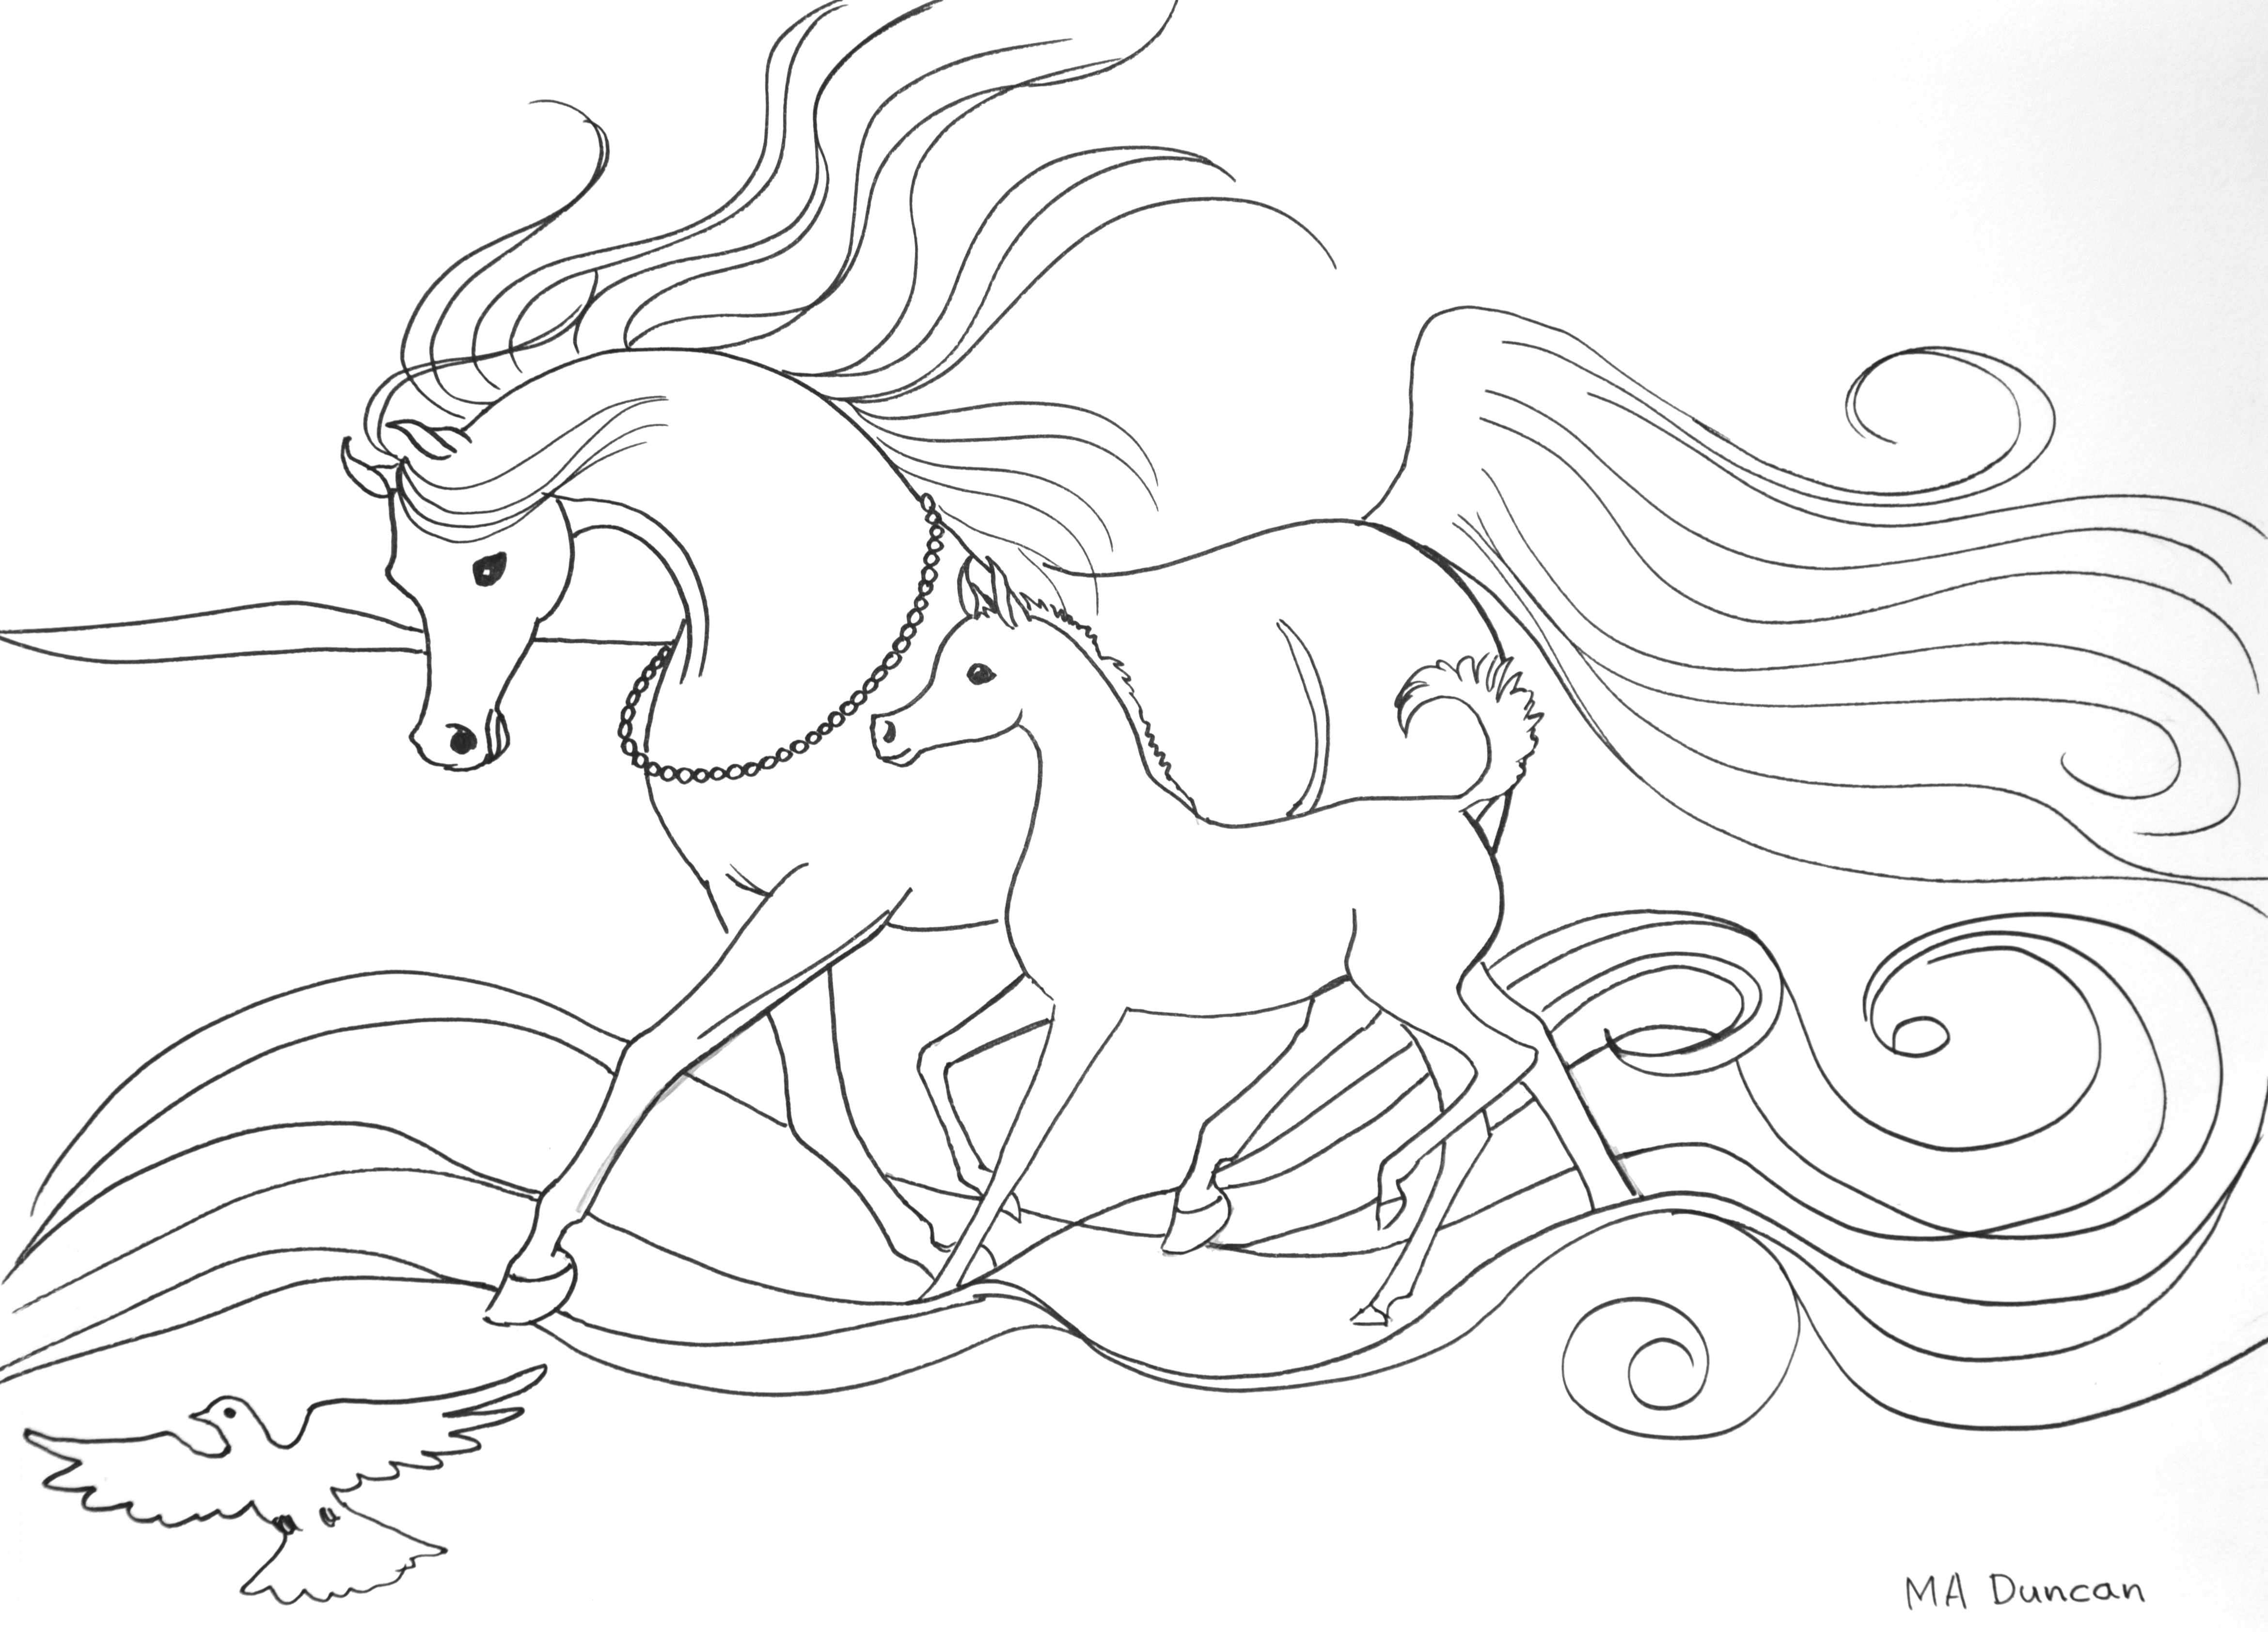 youth colouring in contest australian arabian national